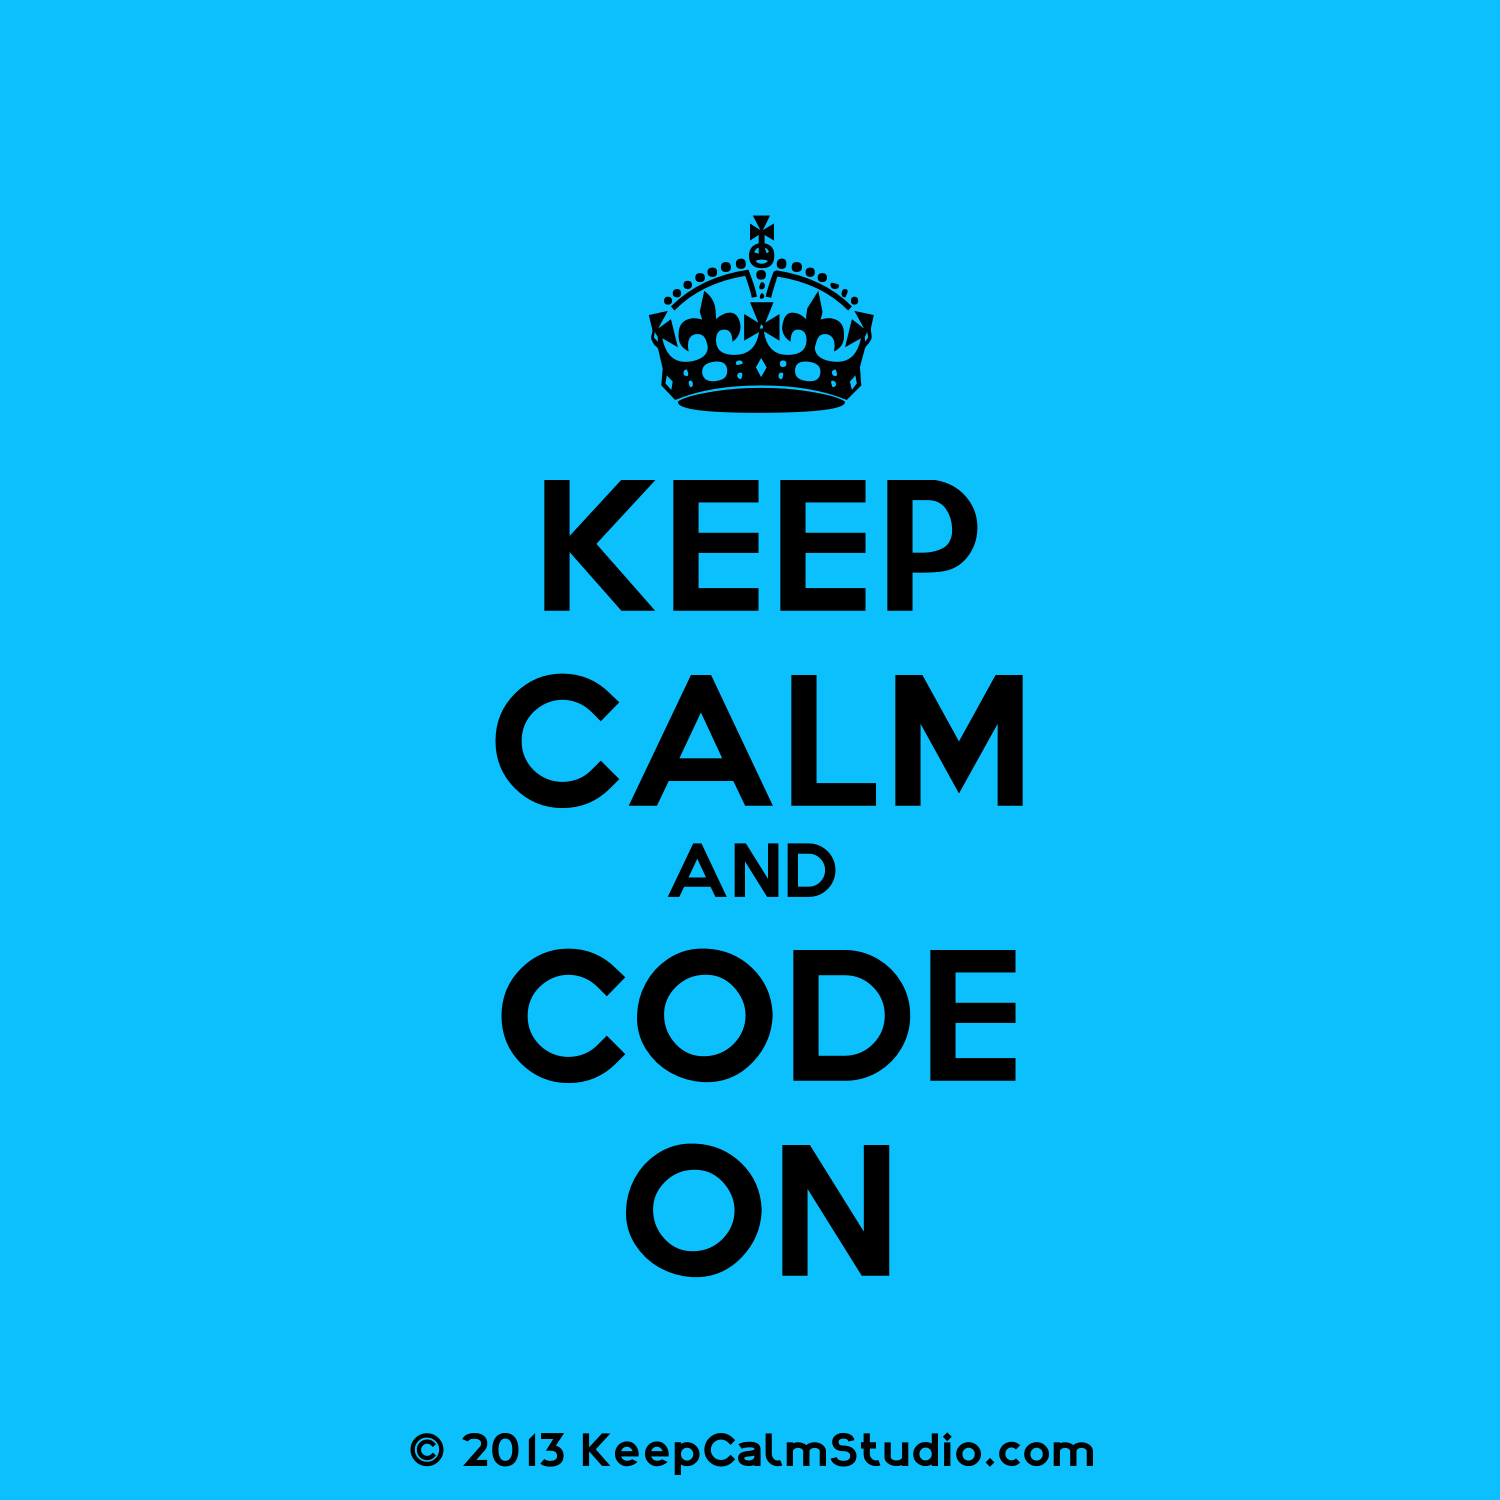 100 tips for icd 10 pcs coding - Icd 101 Learn How To Improve Icd 10 Coding Productivity